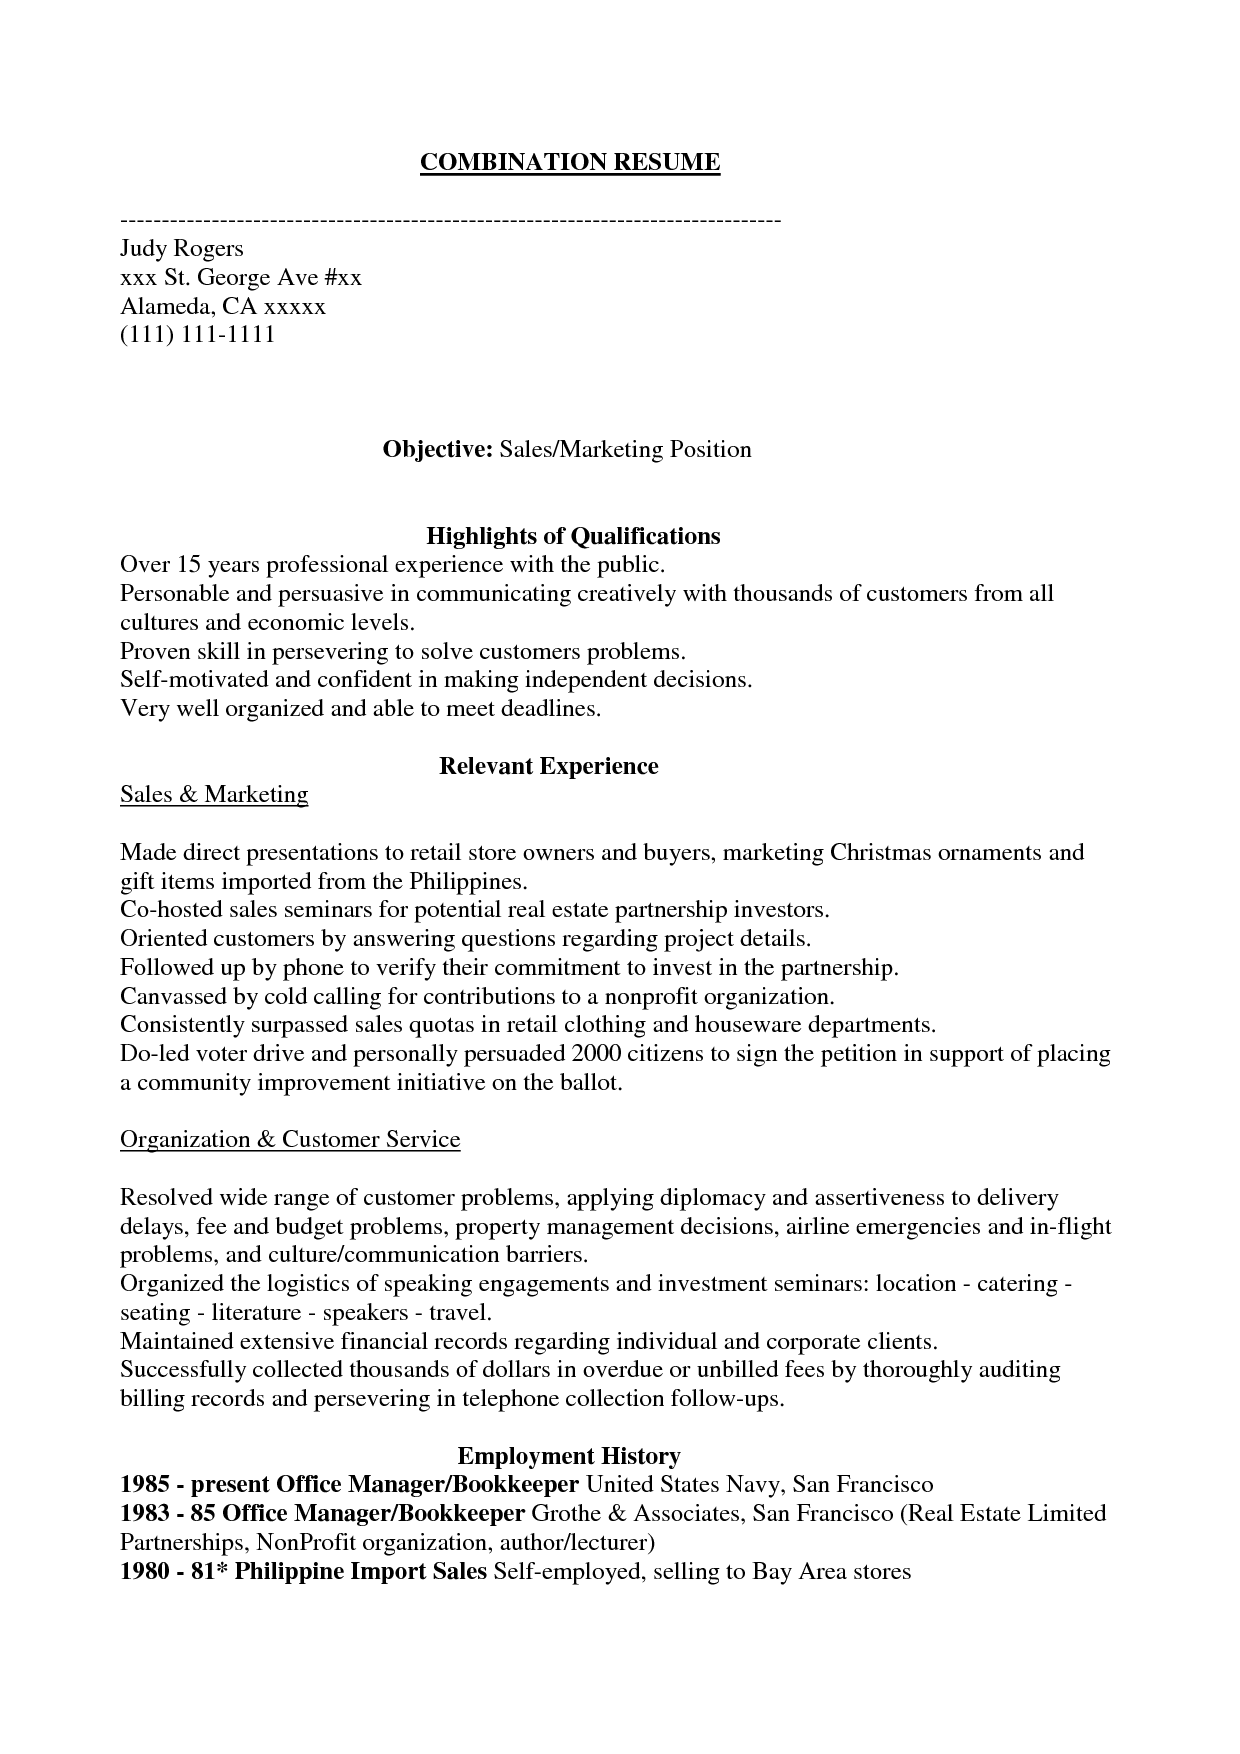 Combination Resume Example Ate Students  Home Design Idea